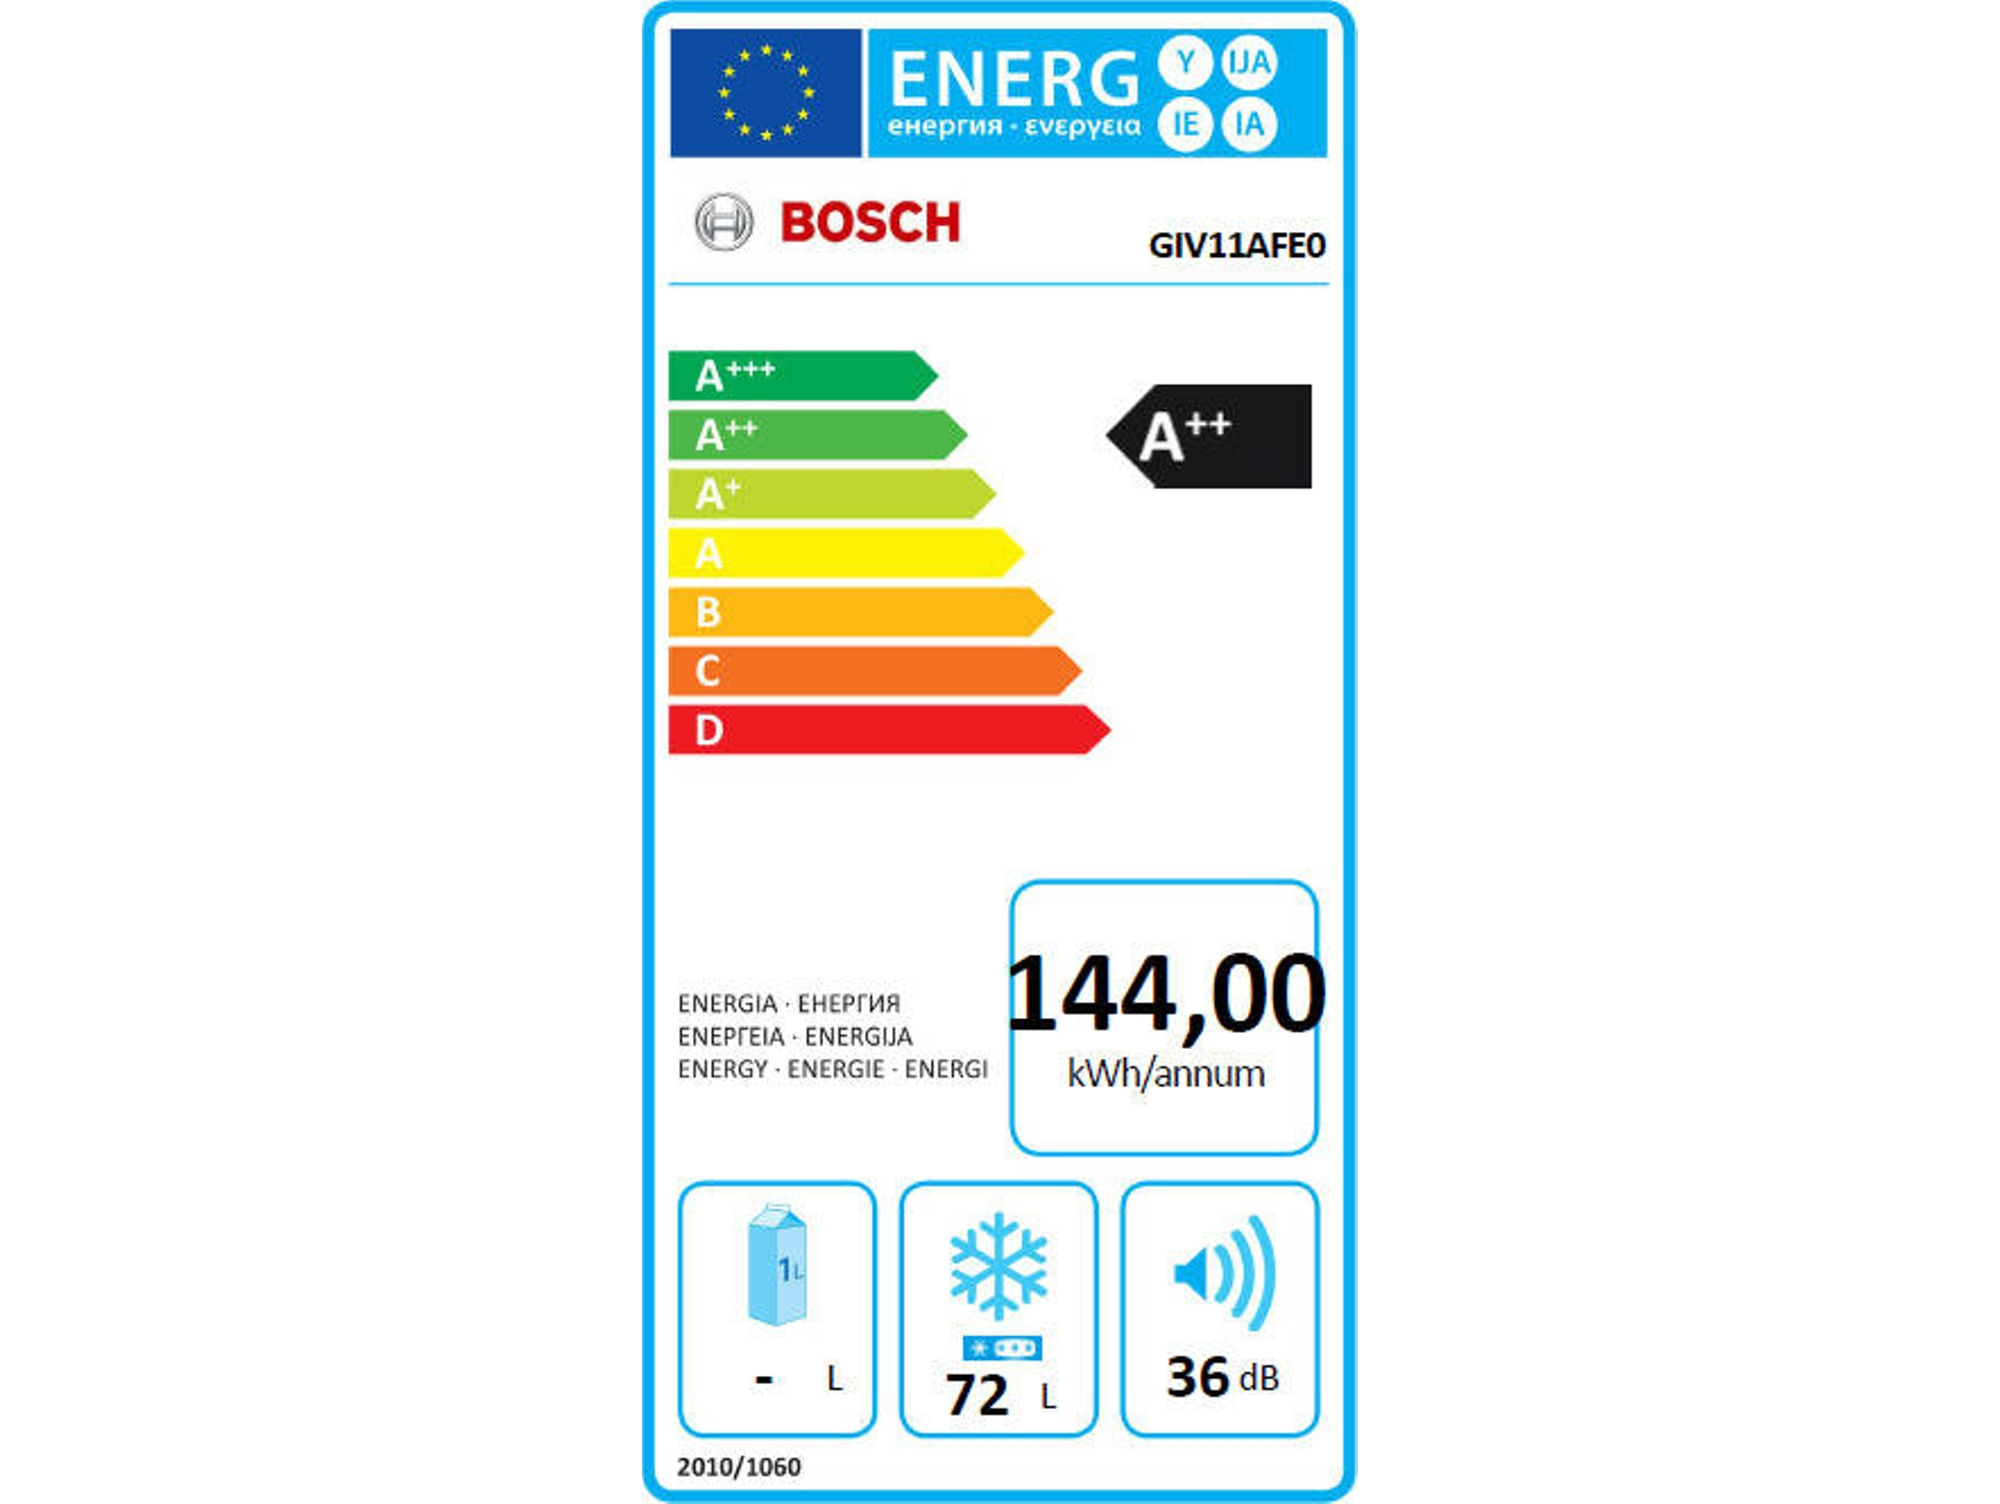 Congelador Vertical Integrable BOSCH GIV11AFE0 (Frost Free - 71.2 cm - 72 L - Blanco)